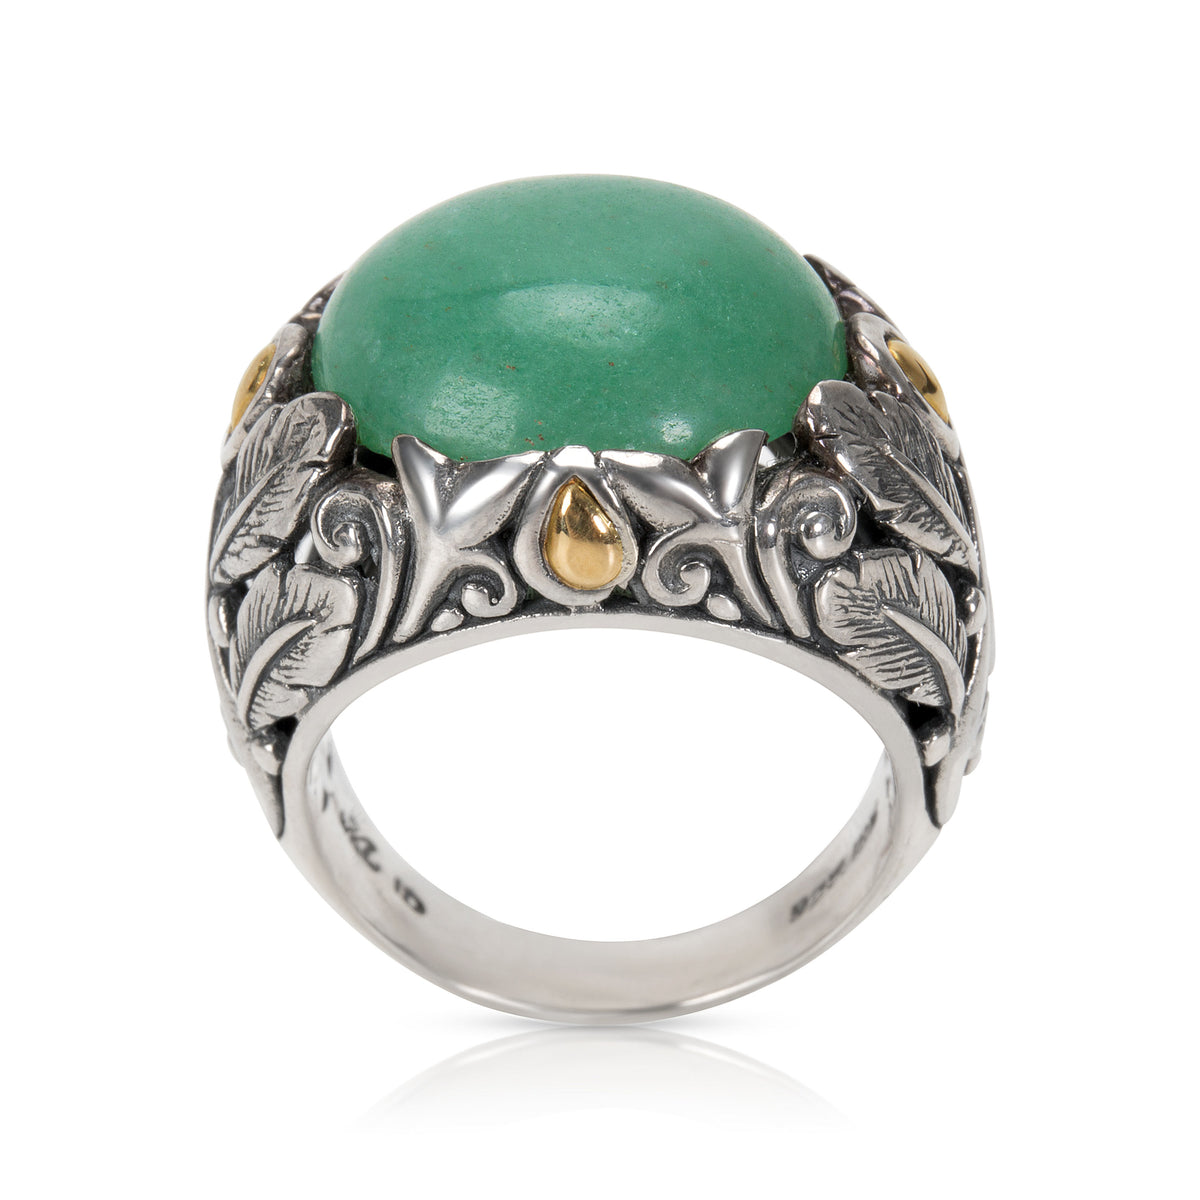 Robert Manse Green Quartz Fashion Ring in 18k Yellow Gold & Sterling Silver